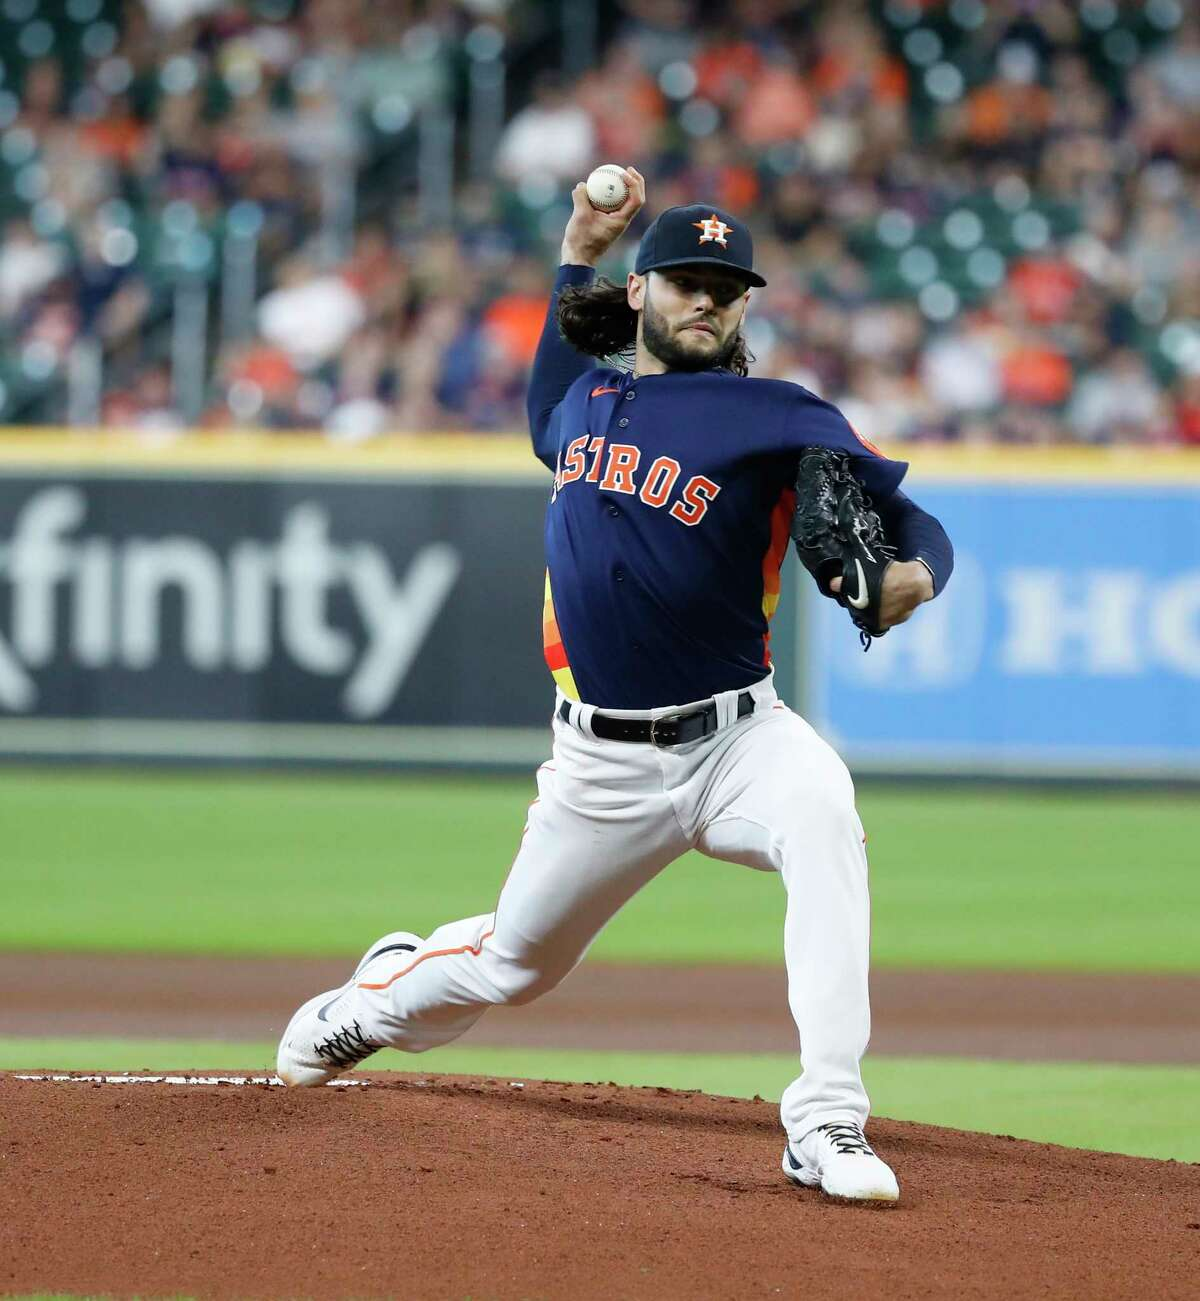 Houston Astros starting pitcher Lance McCullers Jr. (43) pitches to Los Angeles Angels David Fletcher during the first inning of a MLB baseball game at Minute Maid Park, Sunday, September 12, 2021, in Houston.